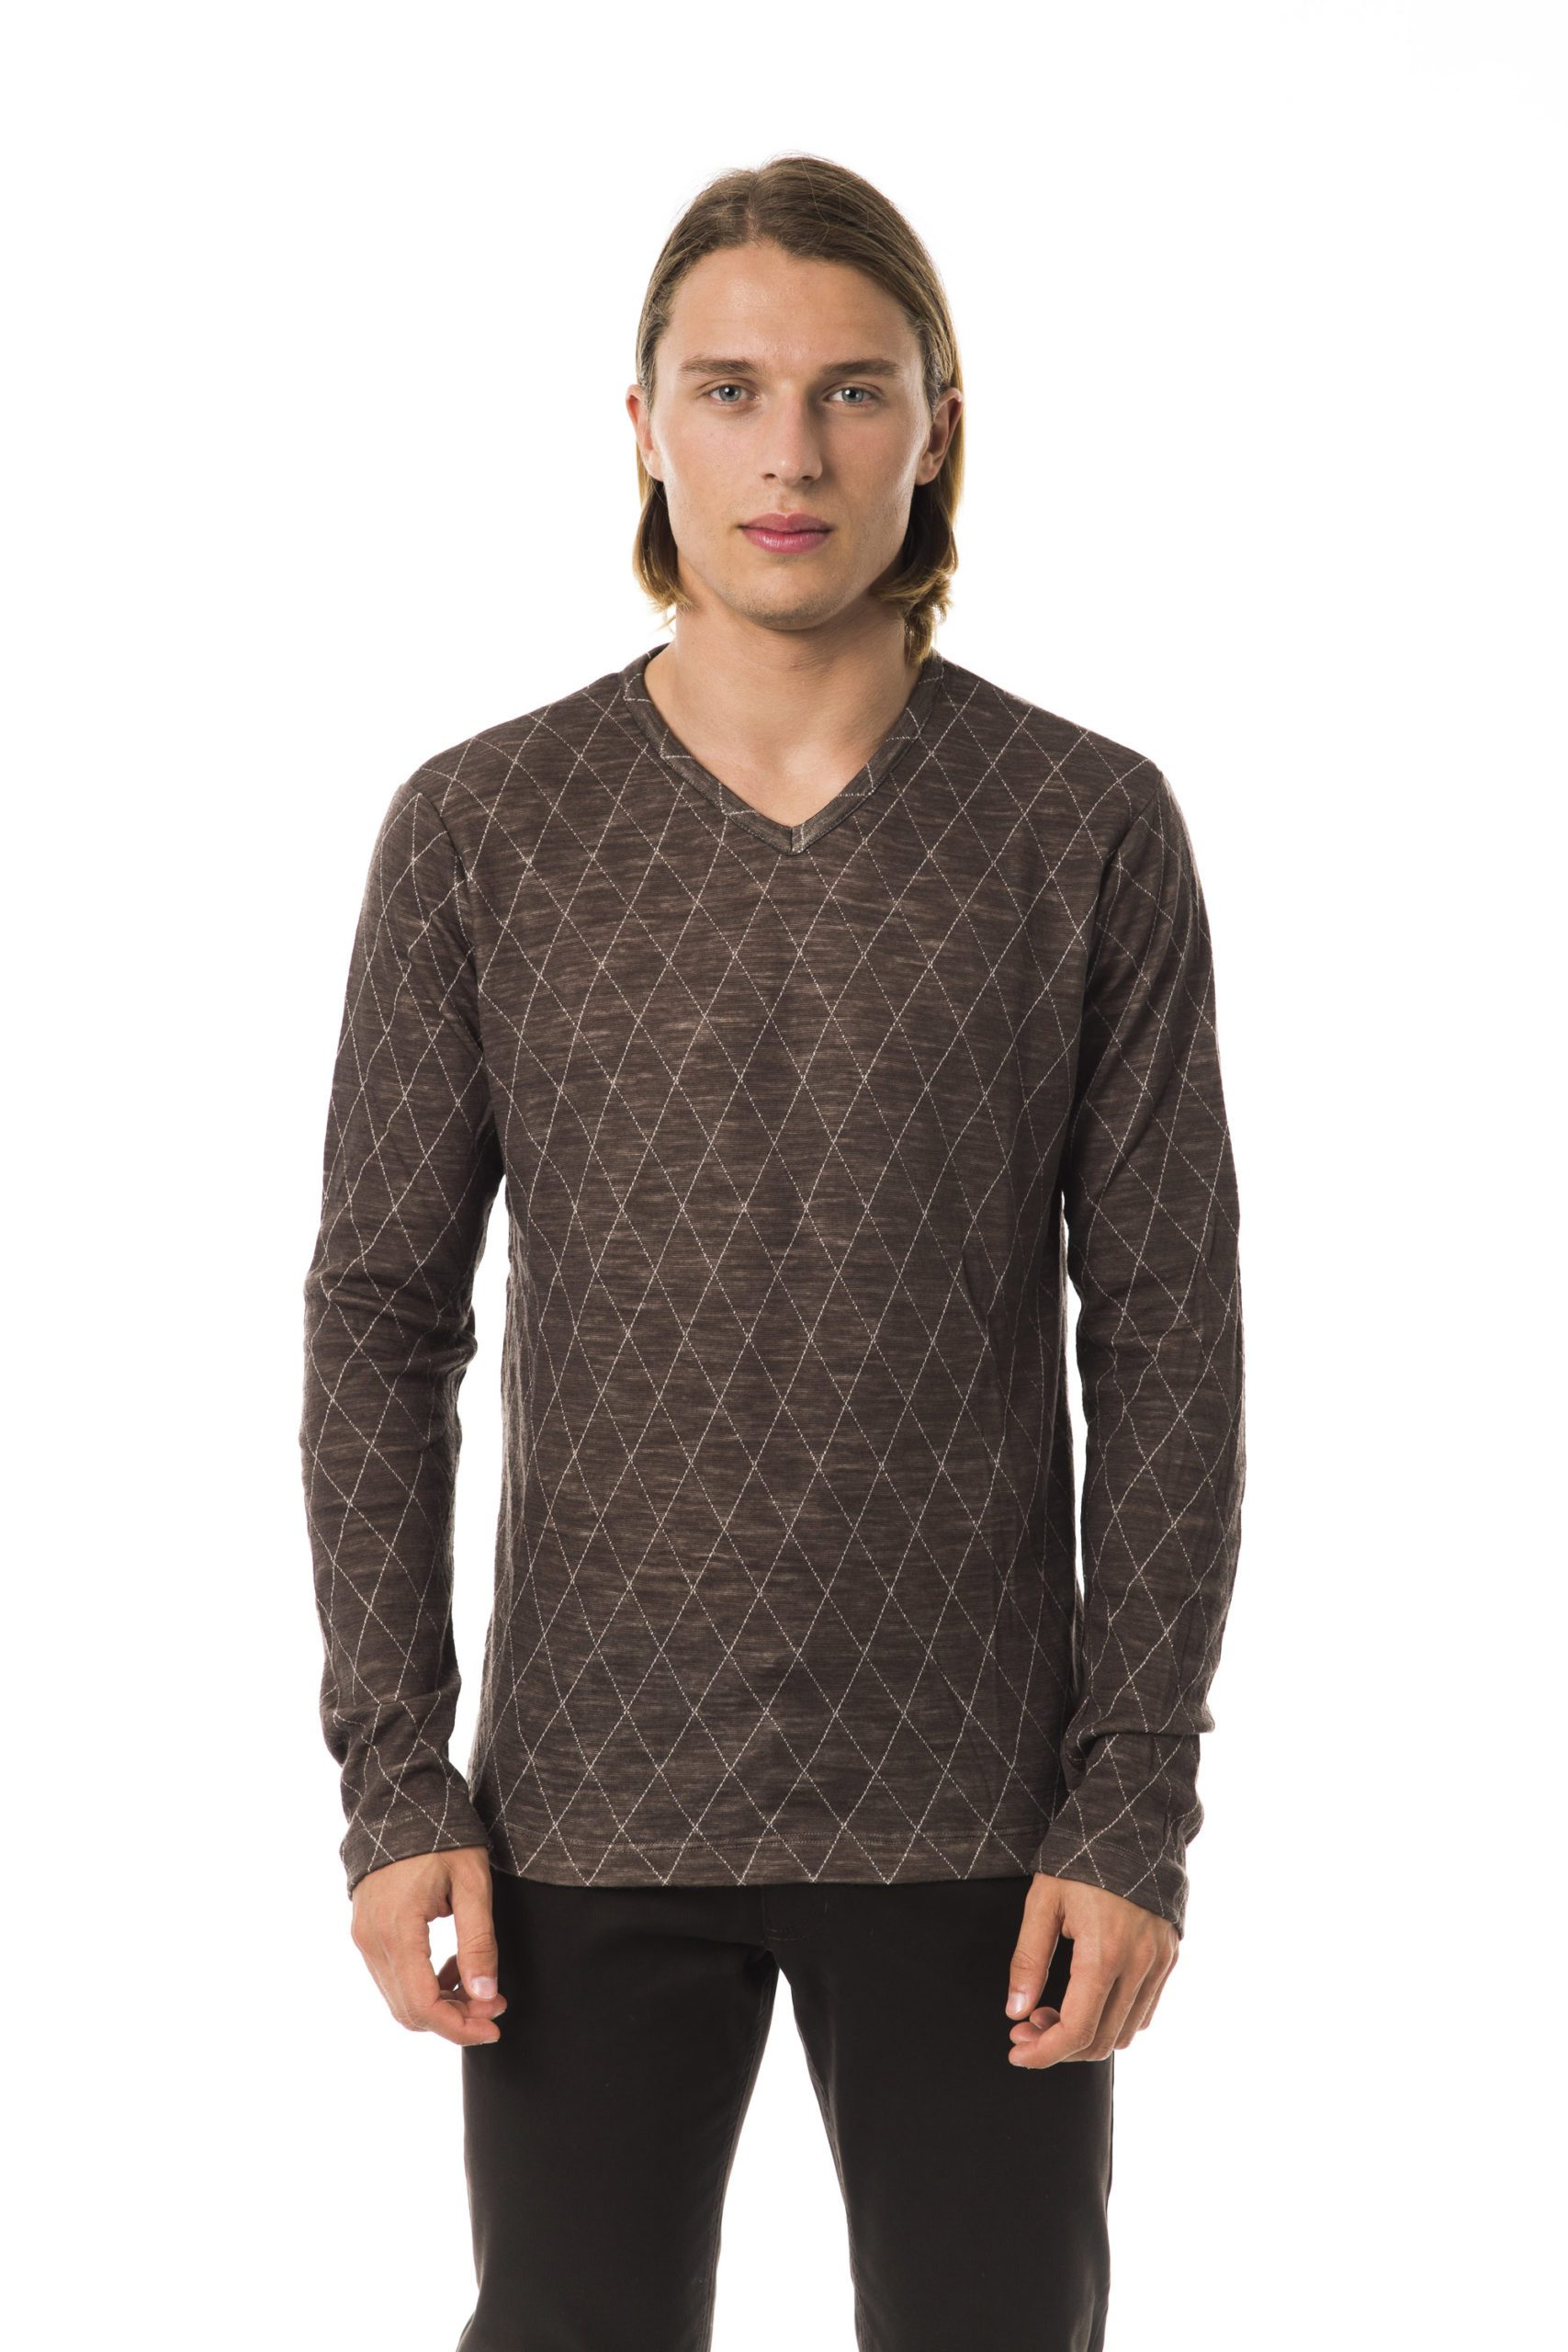 Byblos Men's Sweater Brown BY817236 - S